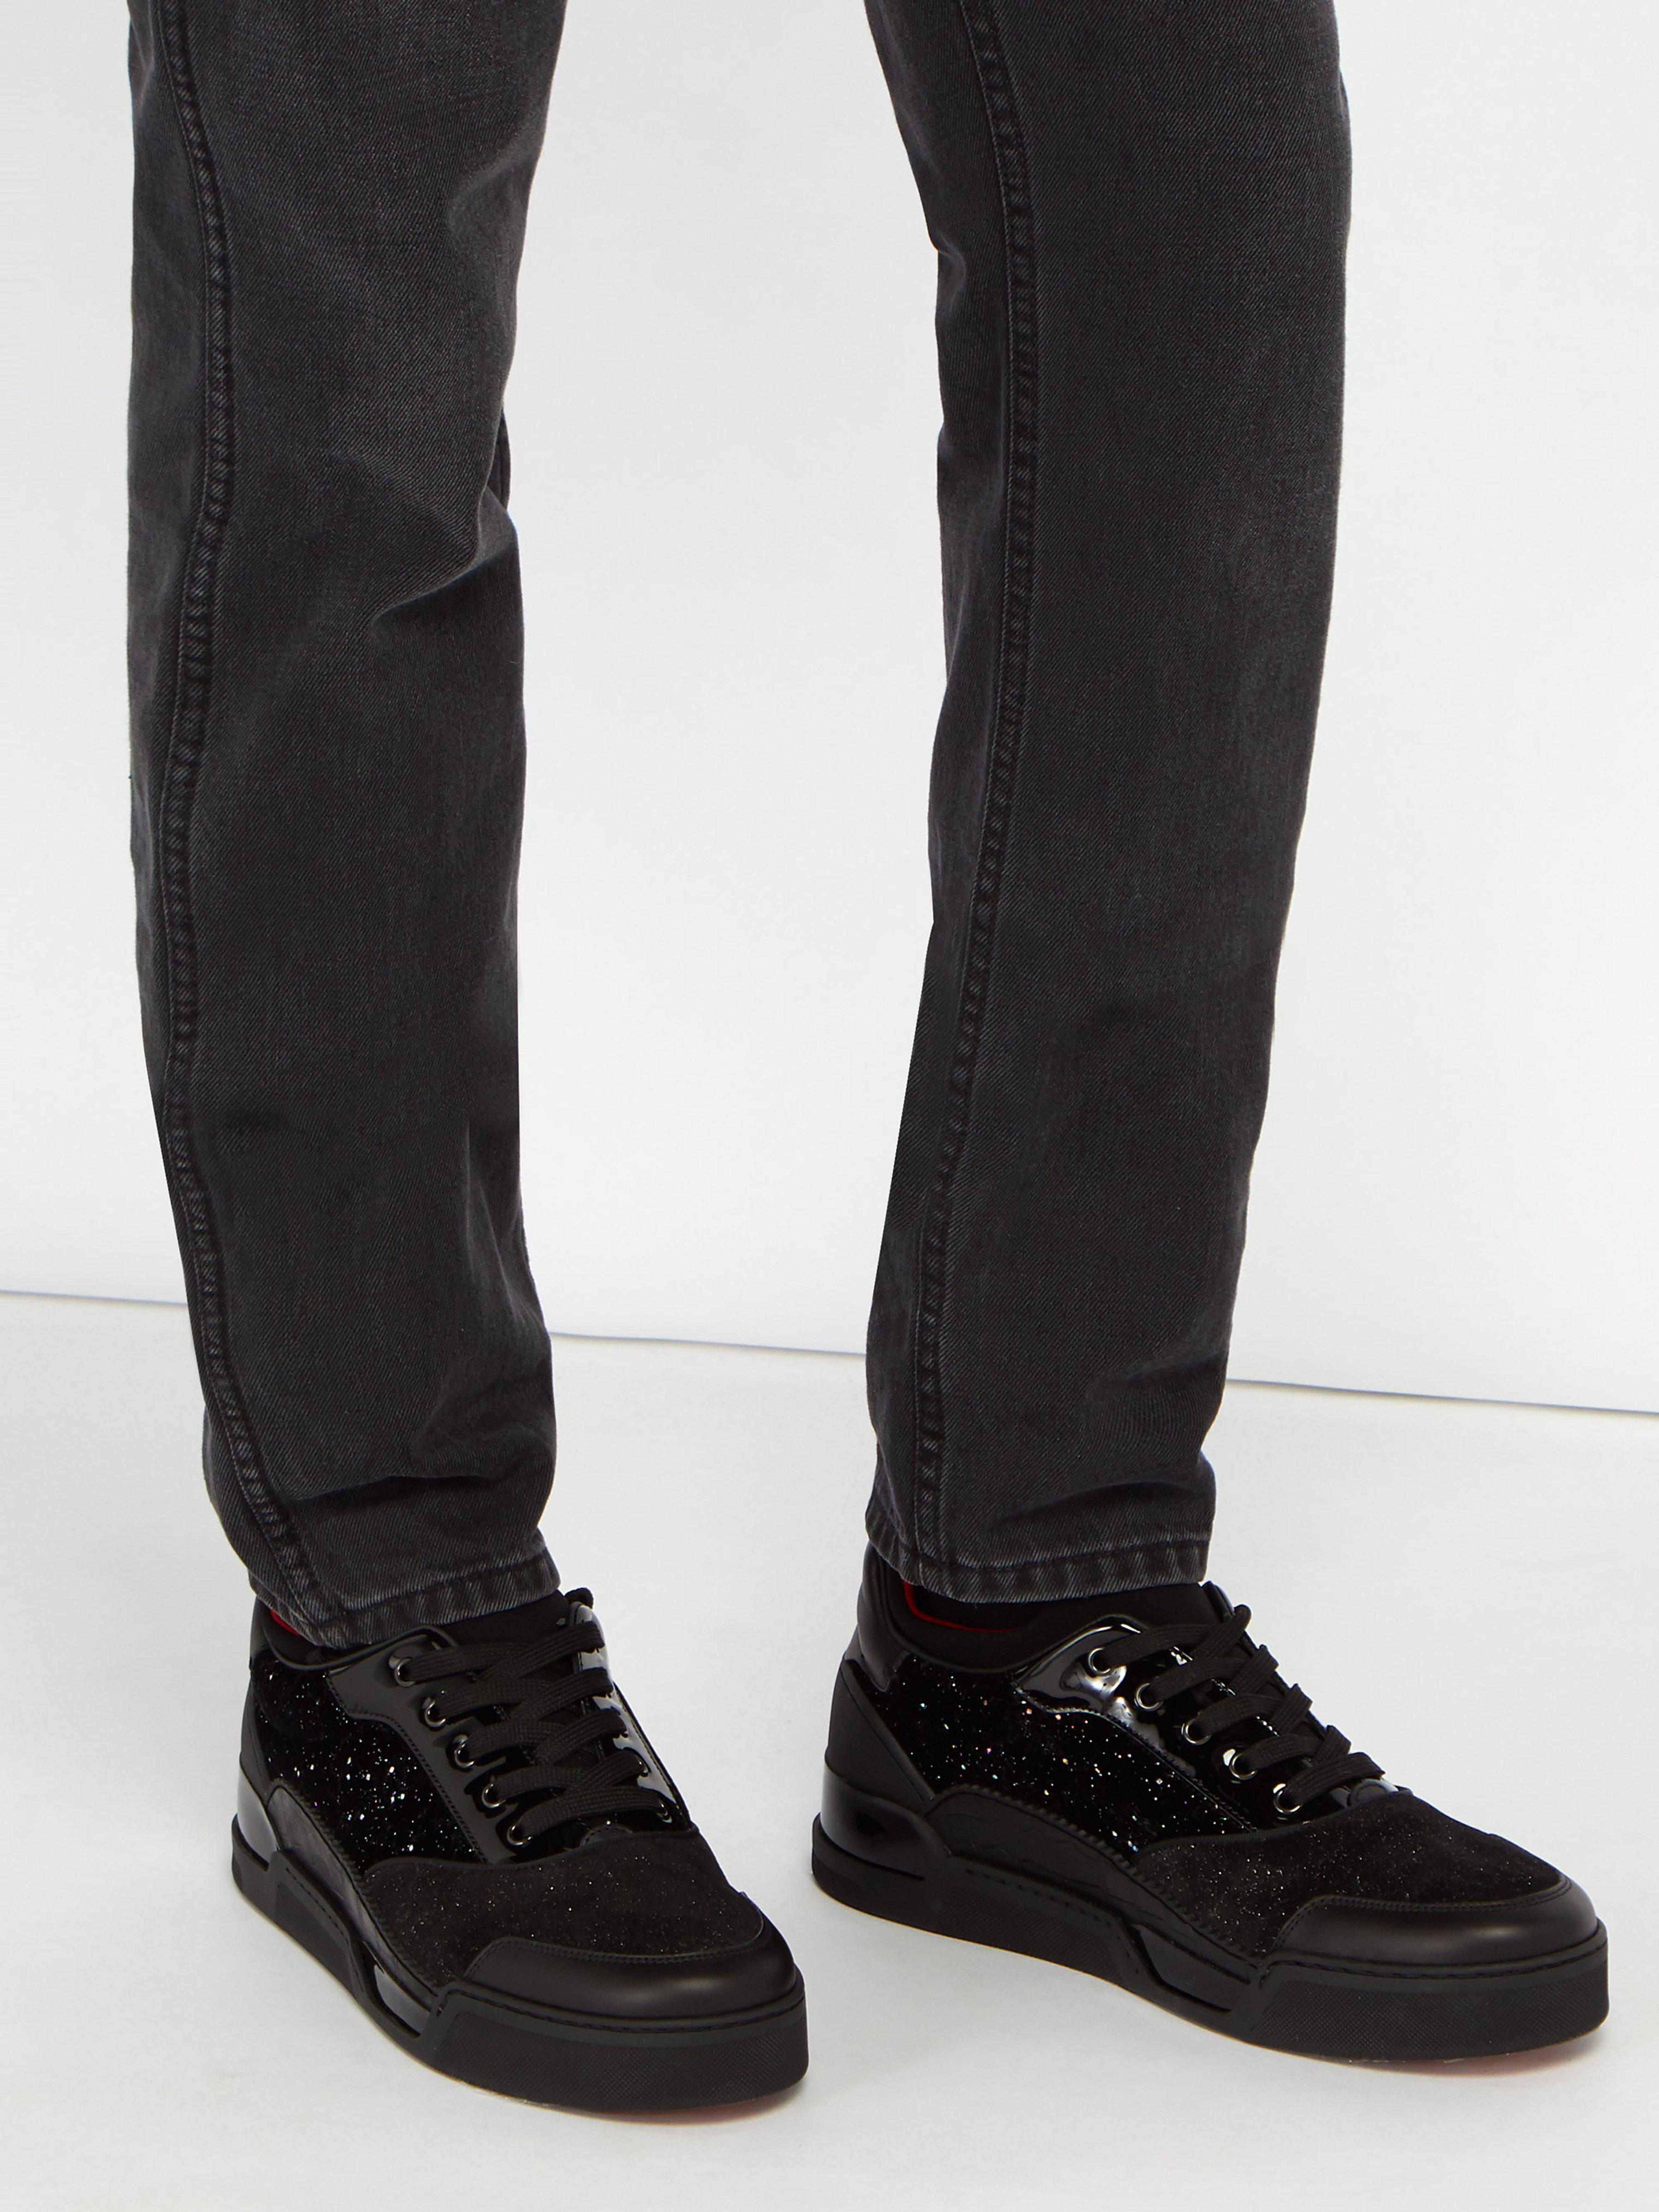 8cb2b08f539 Christian Louboutin Aurelien Glittered Velvet And Suede Trainers in Black  for Men - Lyst